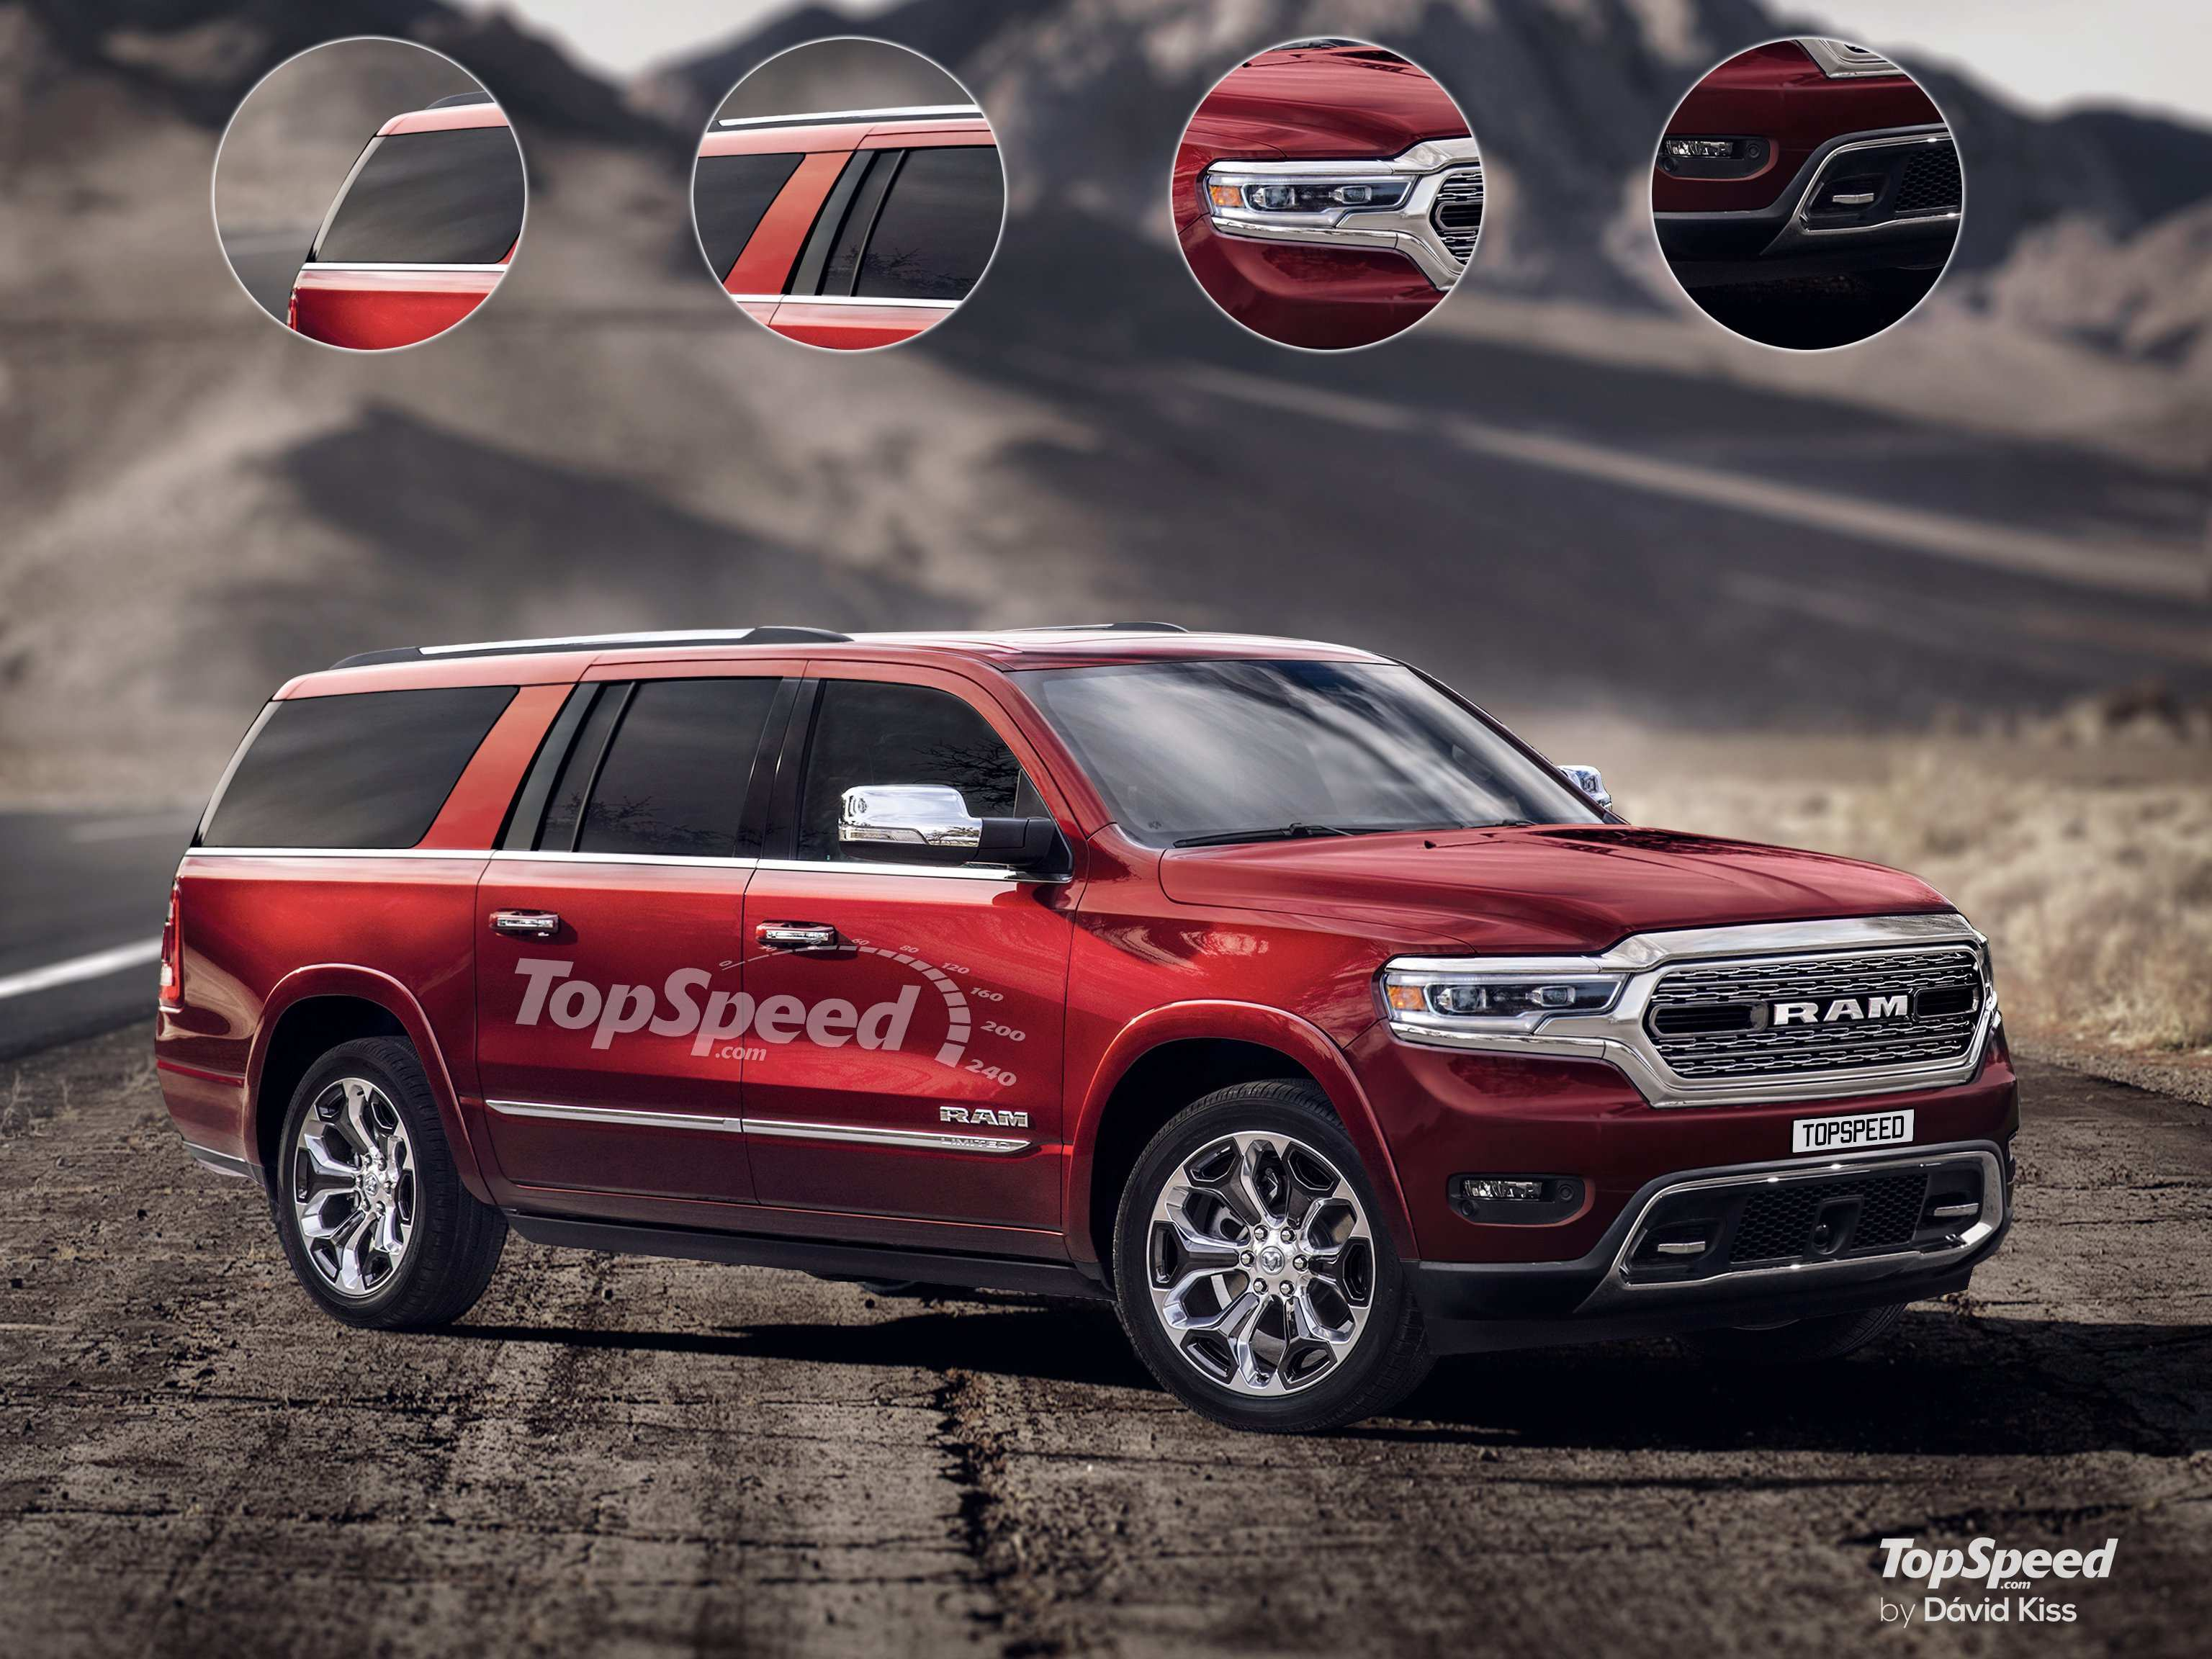 31 Concept of Dodge Suv 2020 Wallpaper with Dodge Suv 2020